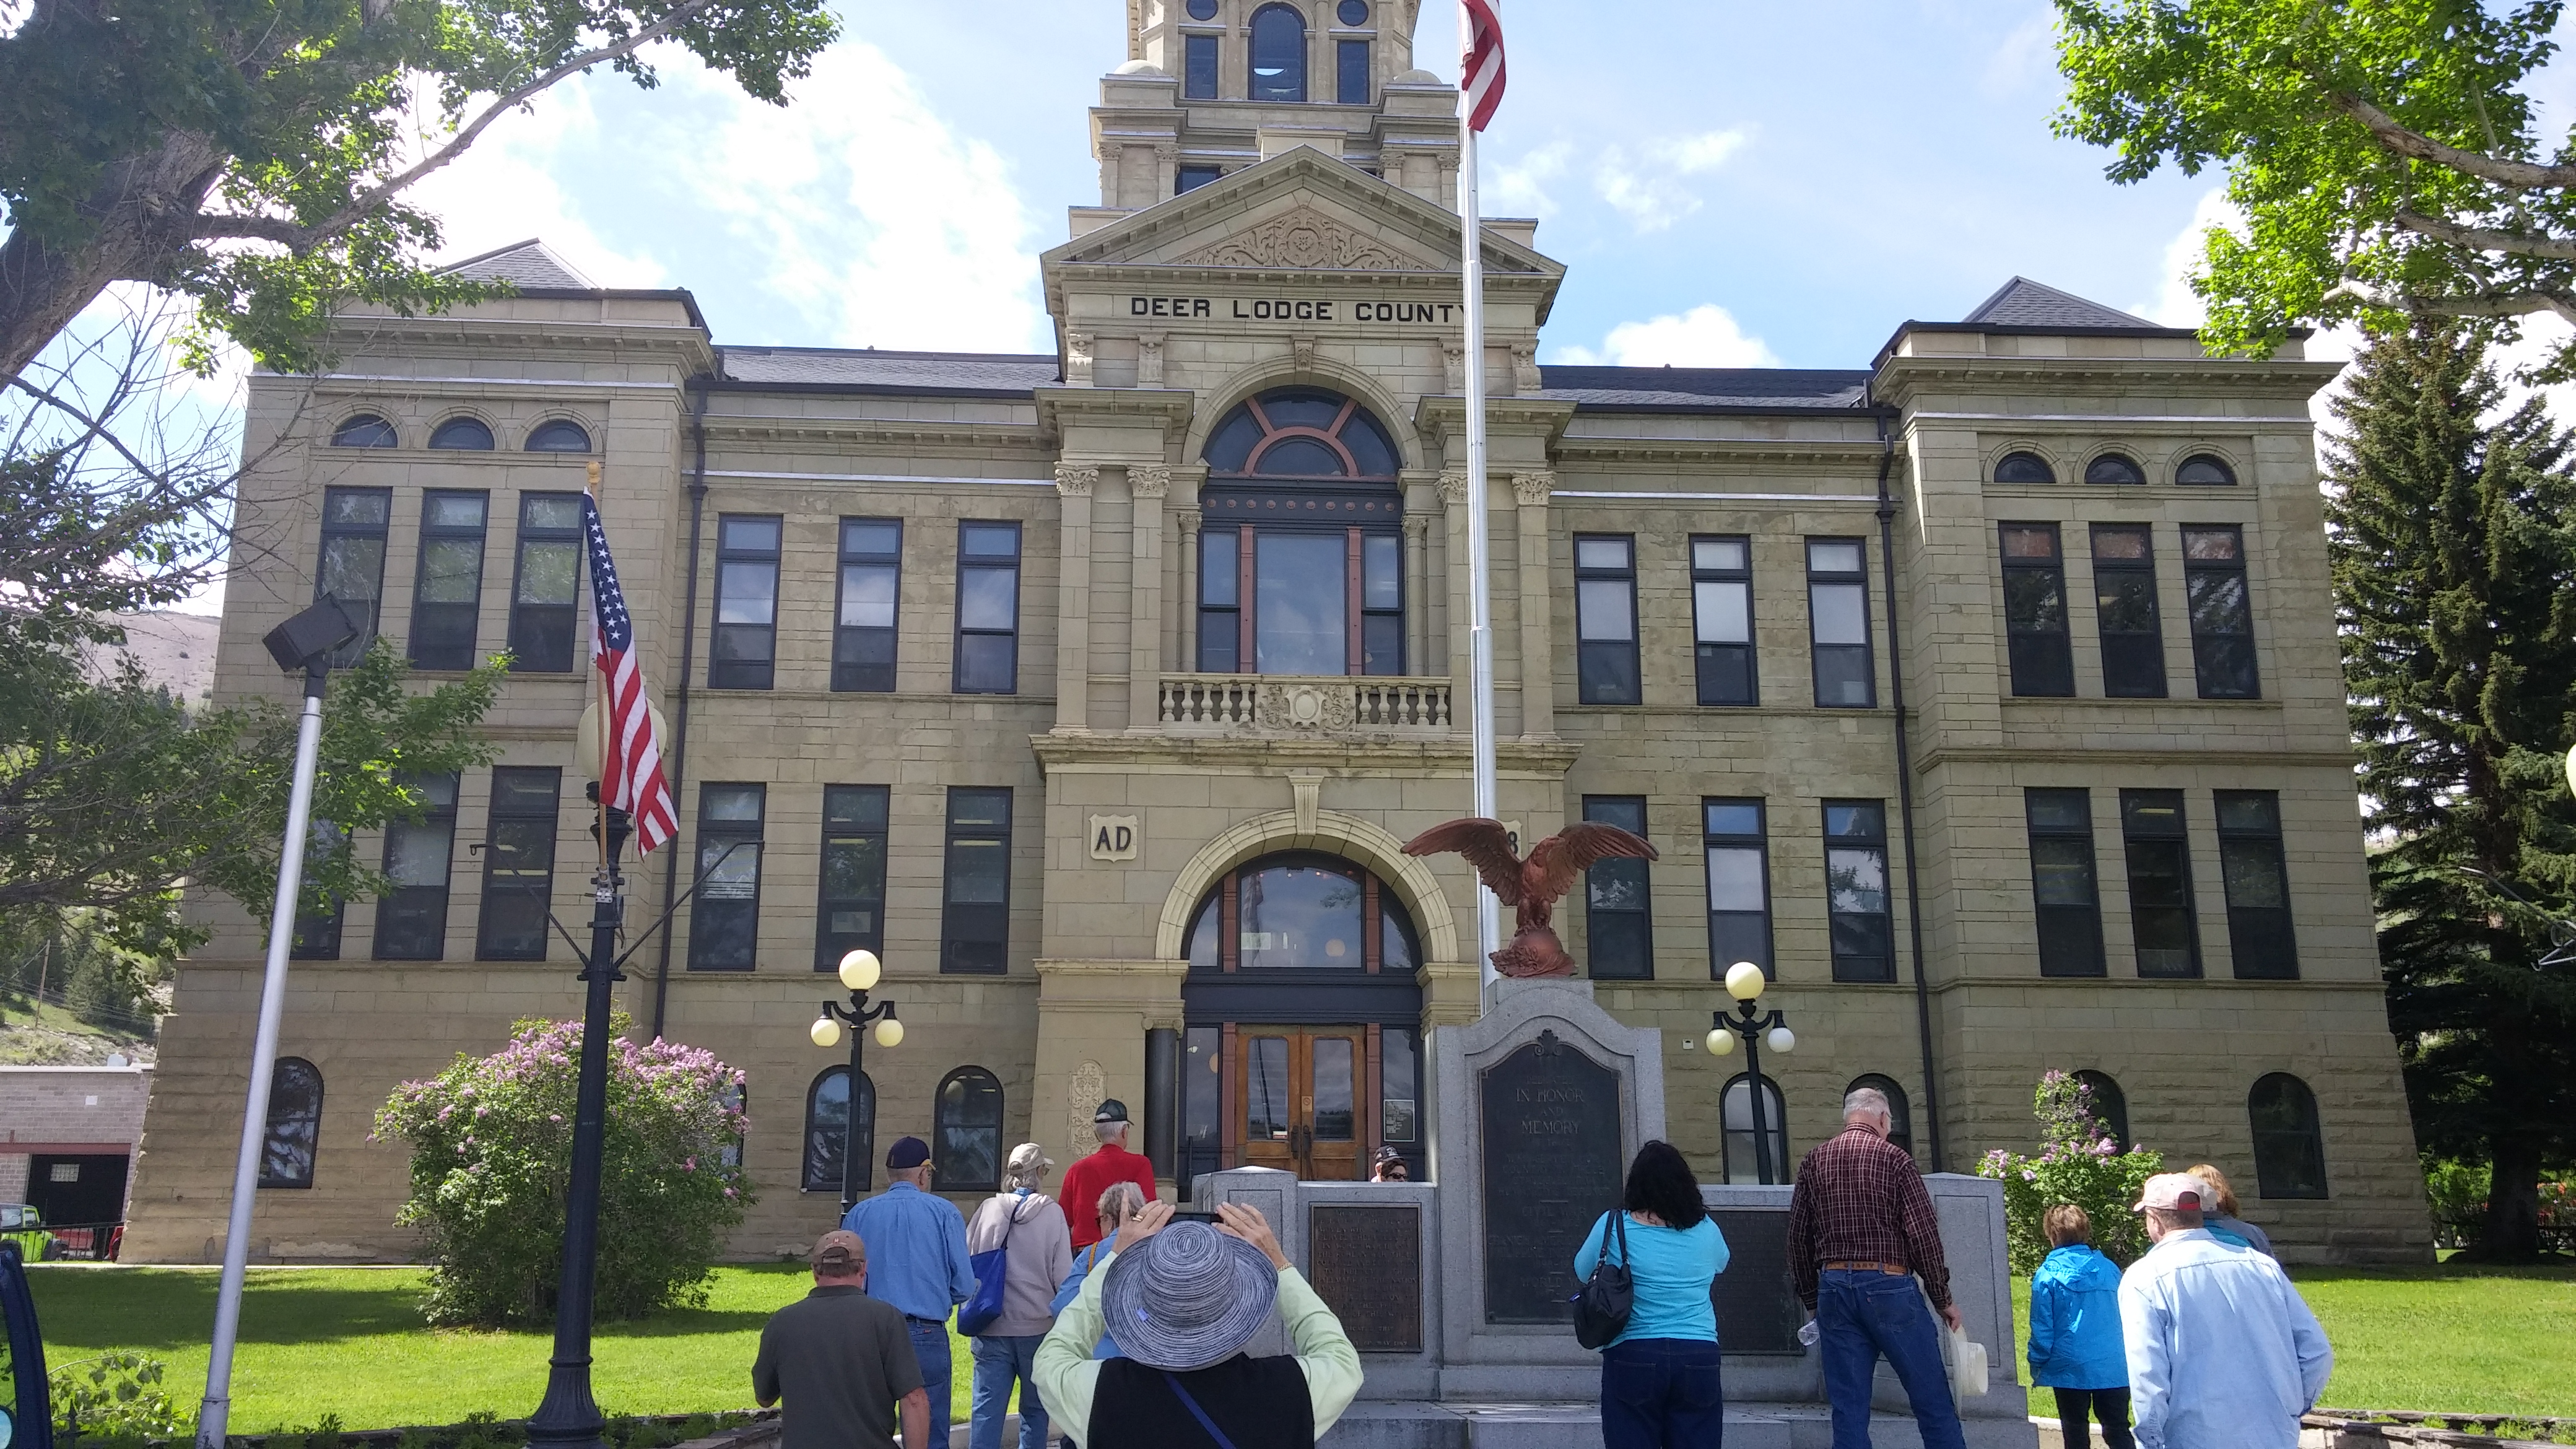 Visiting Deer Lodge County Courthouse in Ananconda. Was almost state capitol except for hidden ballots.